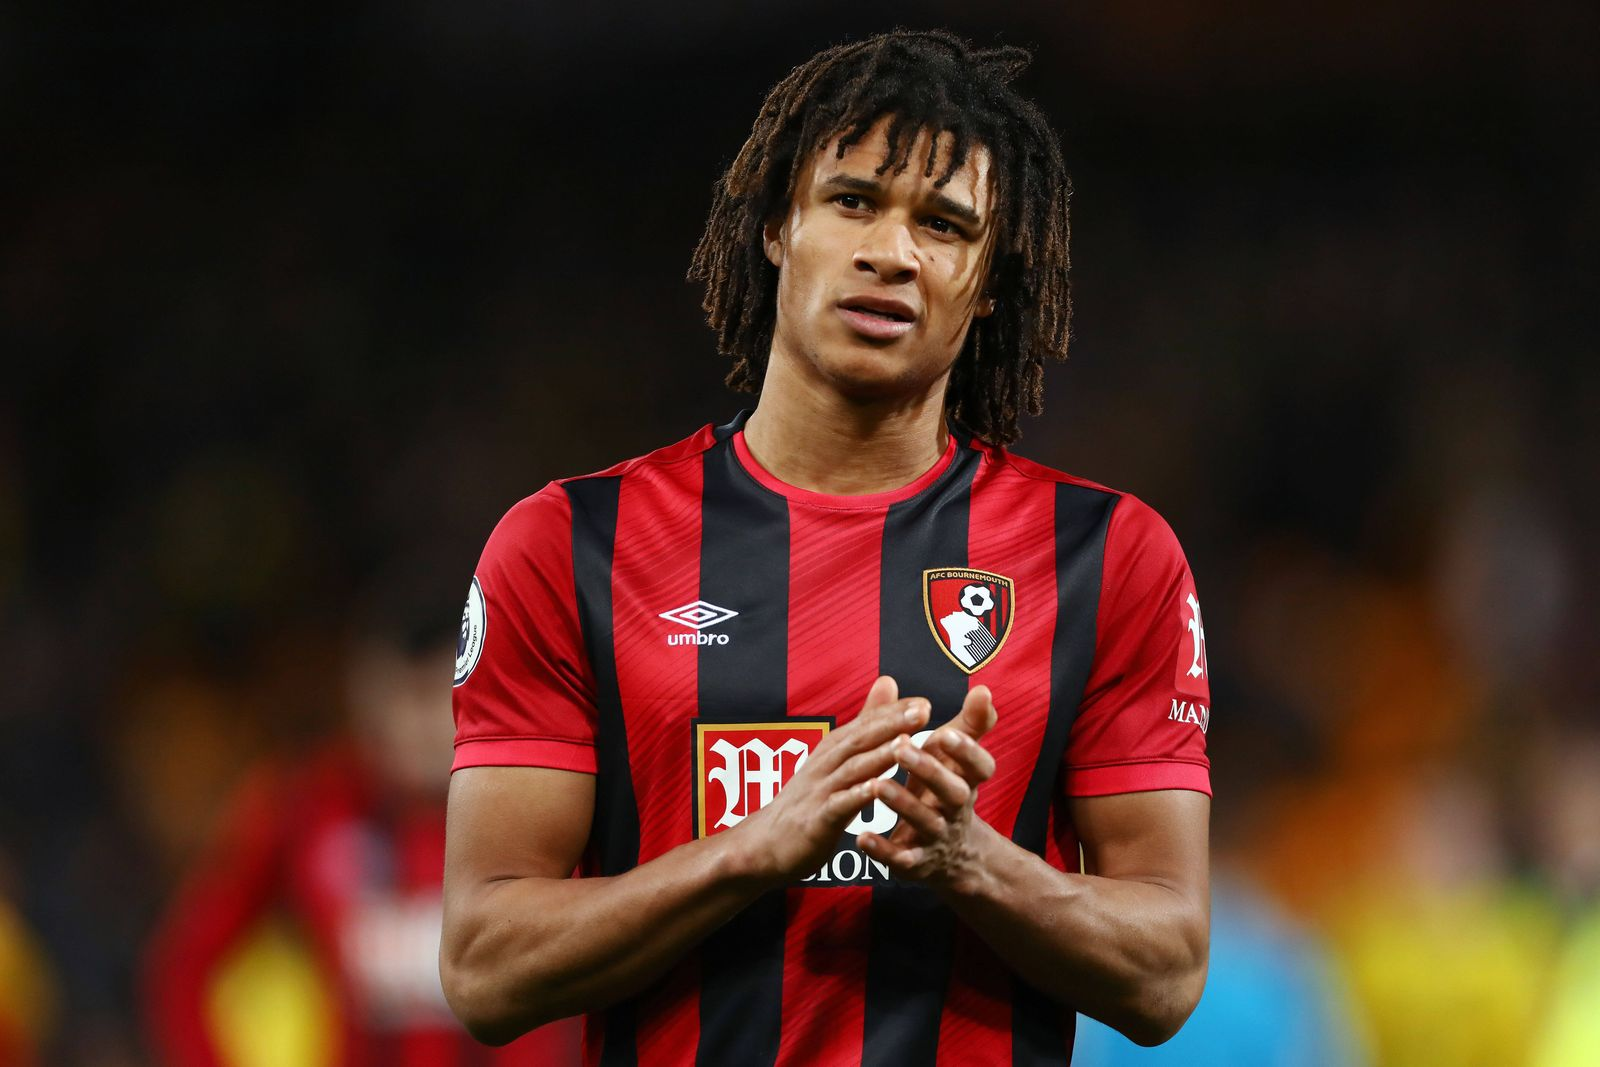 January 18, 2020, Norwich, United Kingdom: Nathan Ake of AFC Bournemouth is seen during the Premier League match betwee